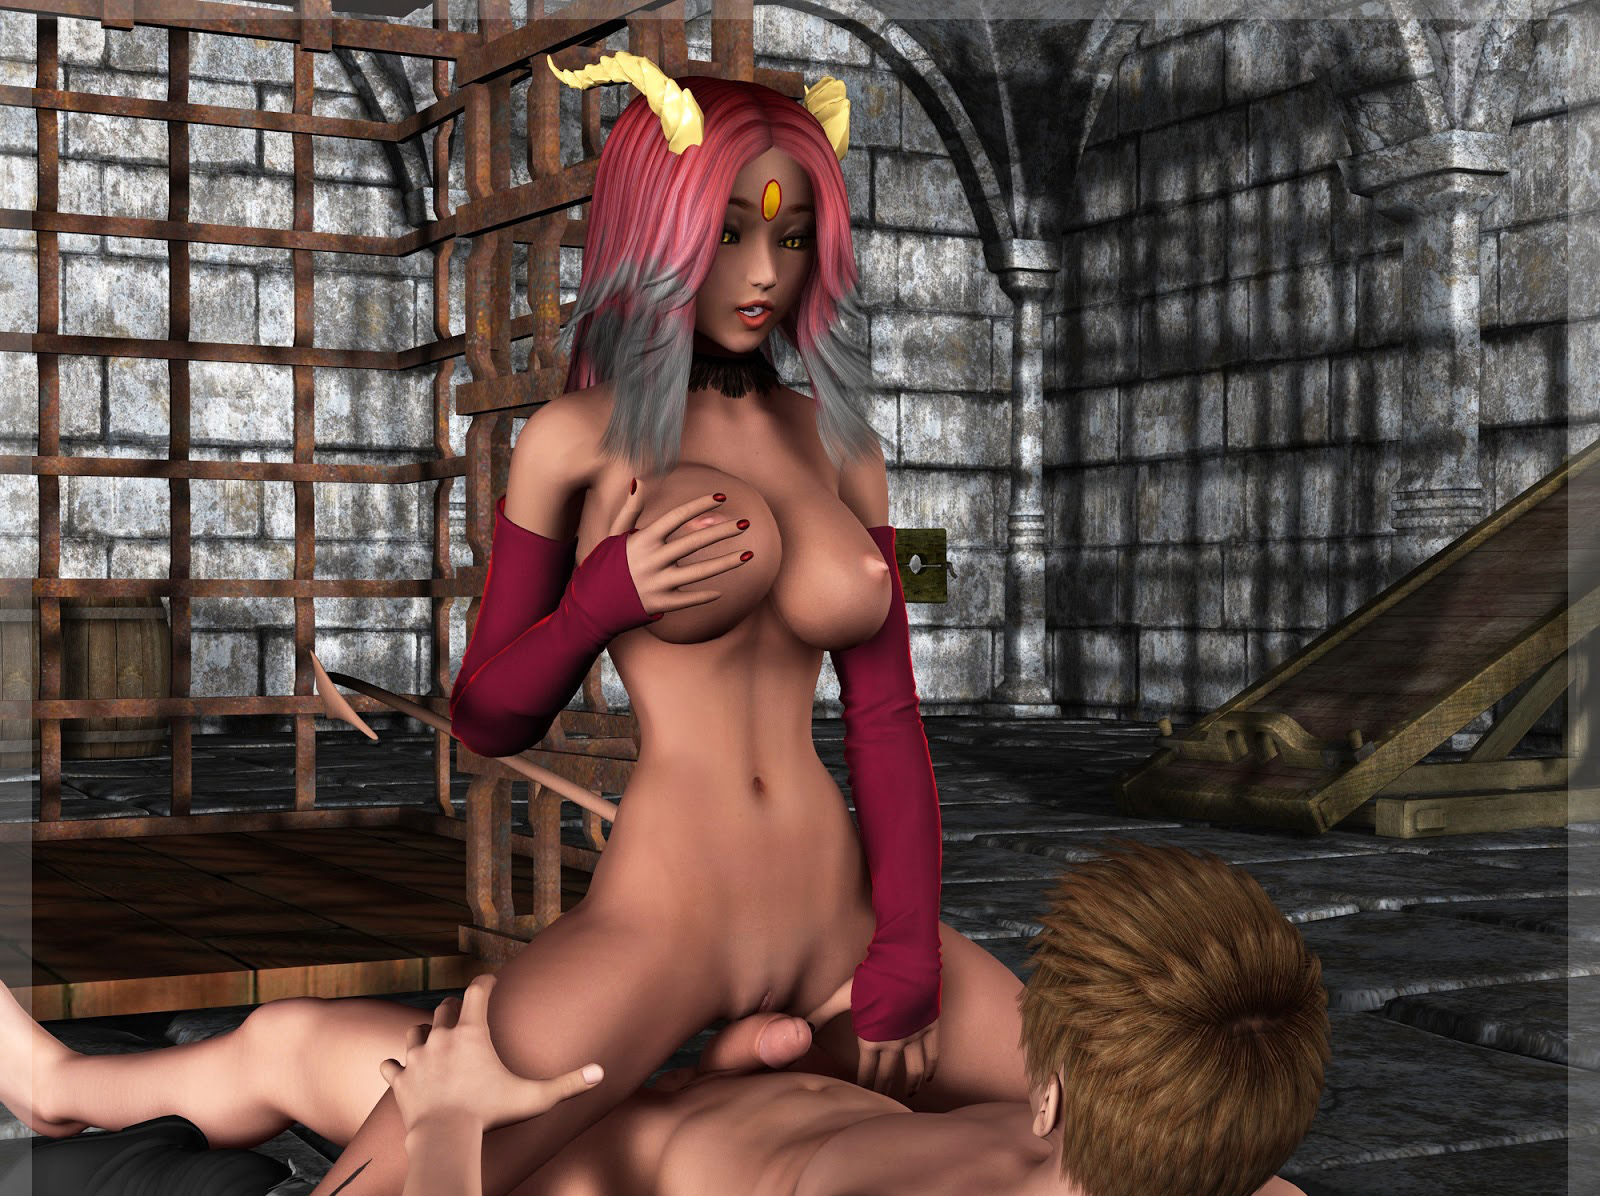 Anime elf porn pics stories nackt photo